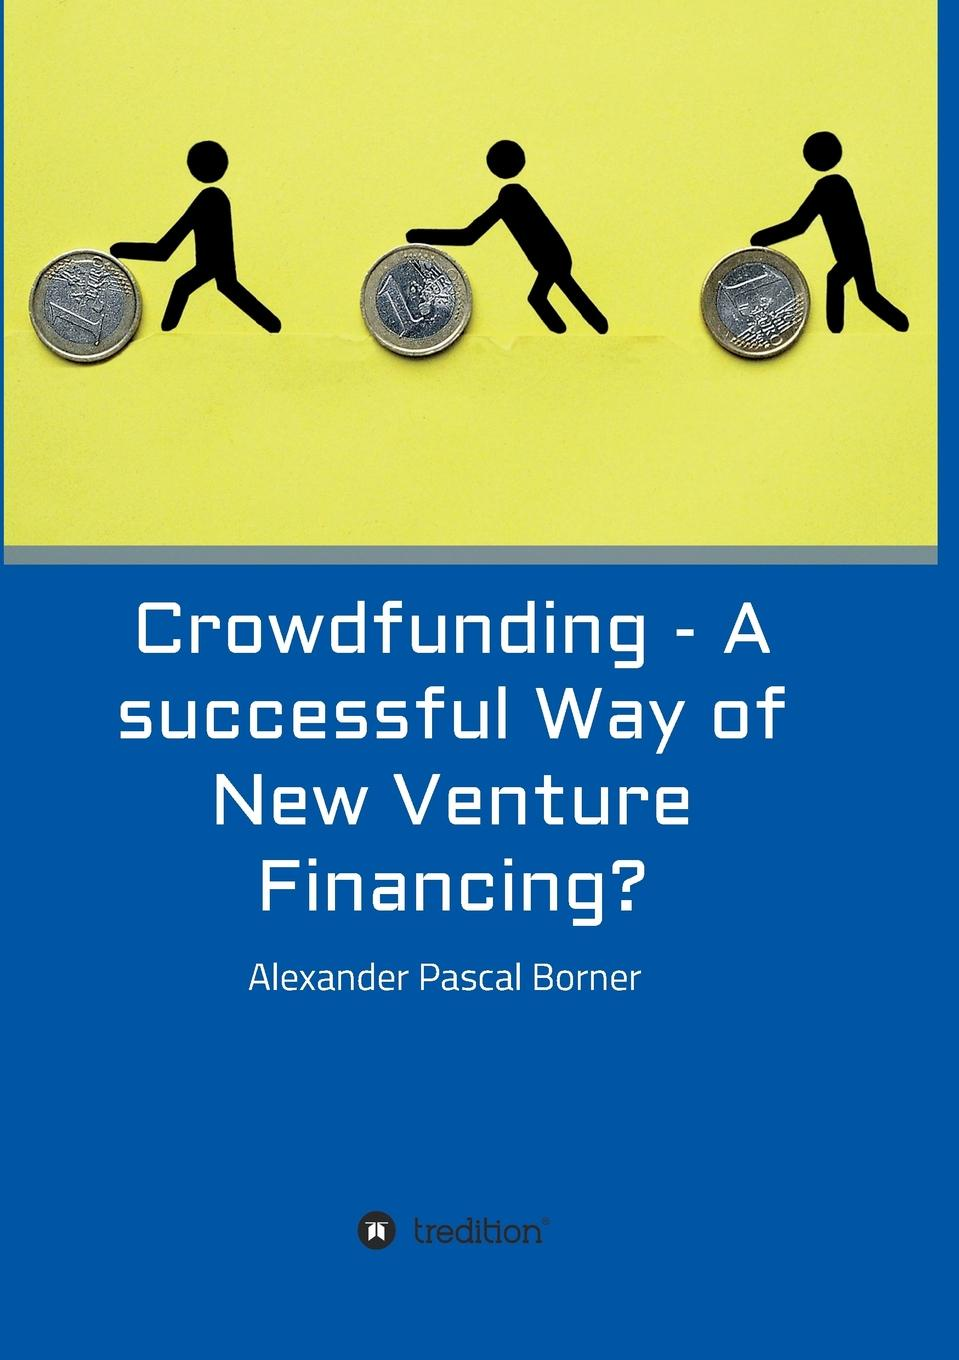 Alexander Pascal Borner Crowdfunding - A successful Way of New Venture Financing. crowdfunding